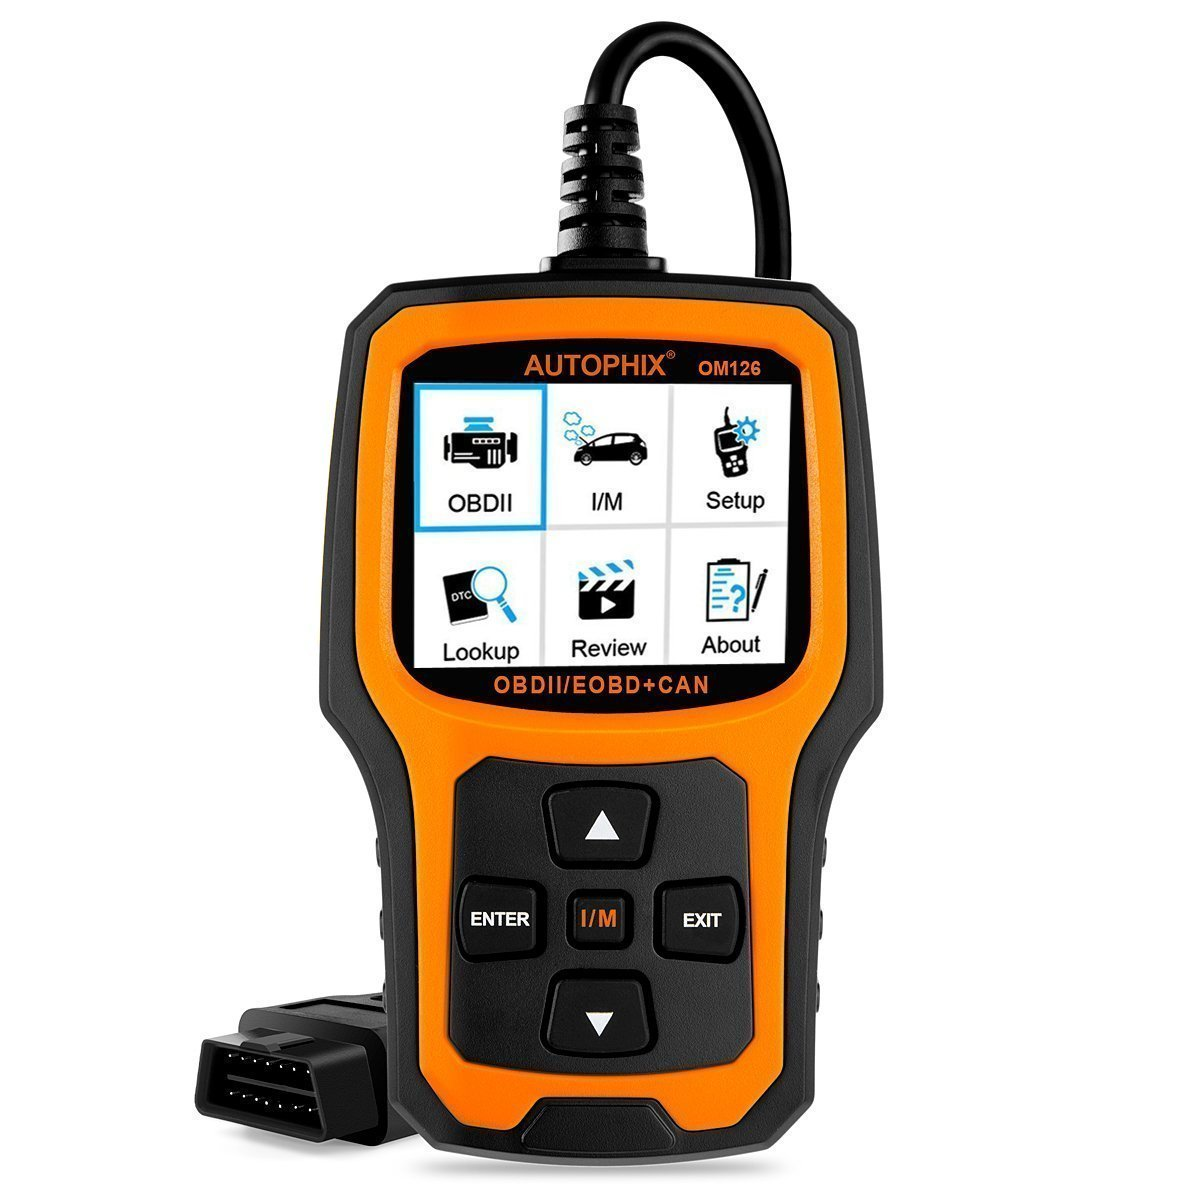 Autophix Code Reader Om126 Obdii Obd2 Scanner Car Engine 1966 Chevy Nova Which Froze With An Alternatorwiring Fault Auto Check Light Can Automotive Diagnostic Scan Tool